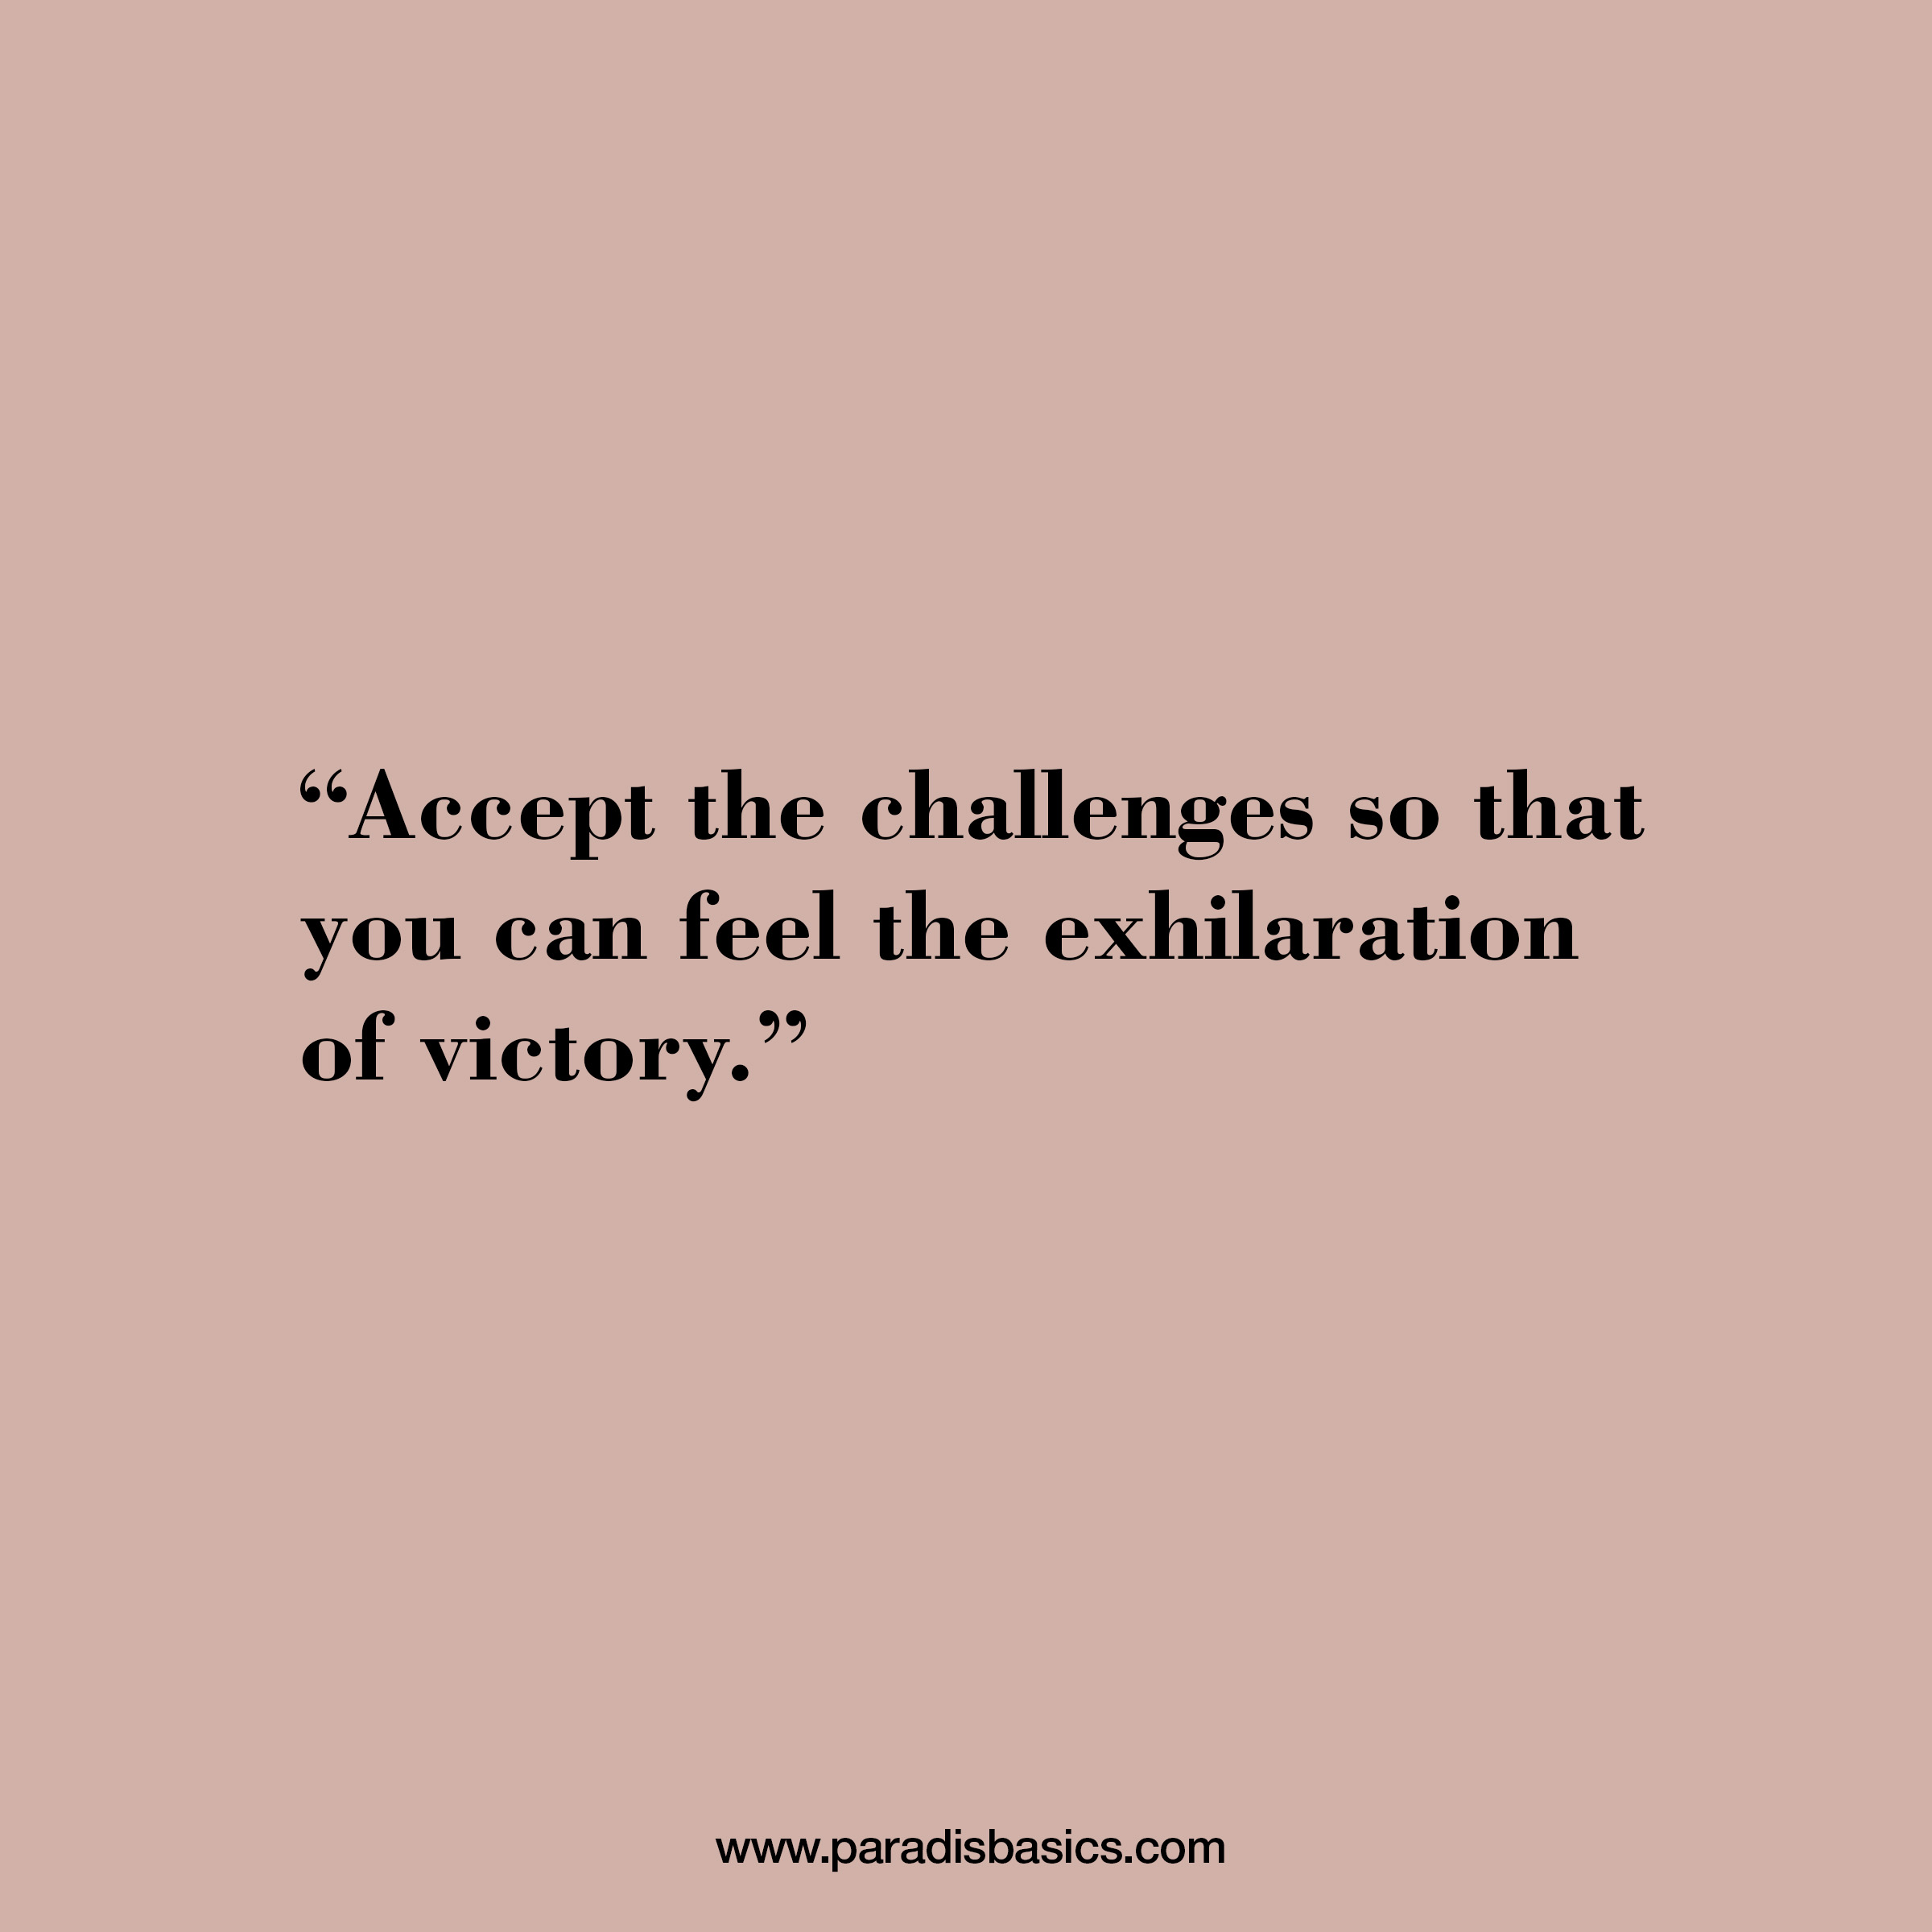 Accept the challenges so that you can feel the exhilaration of victory